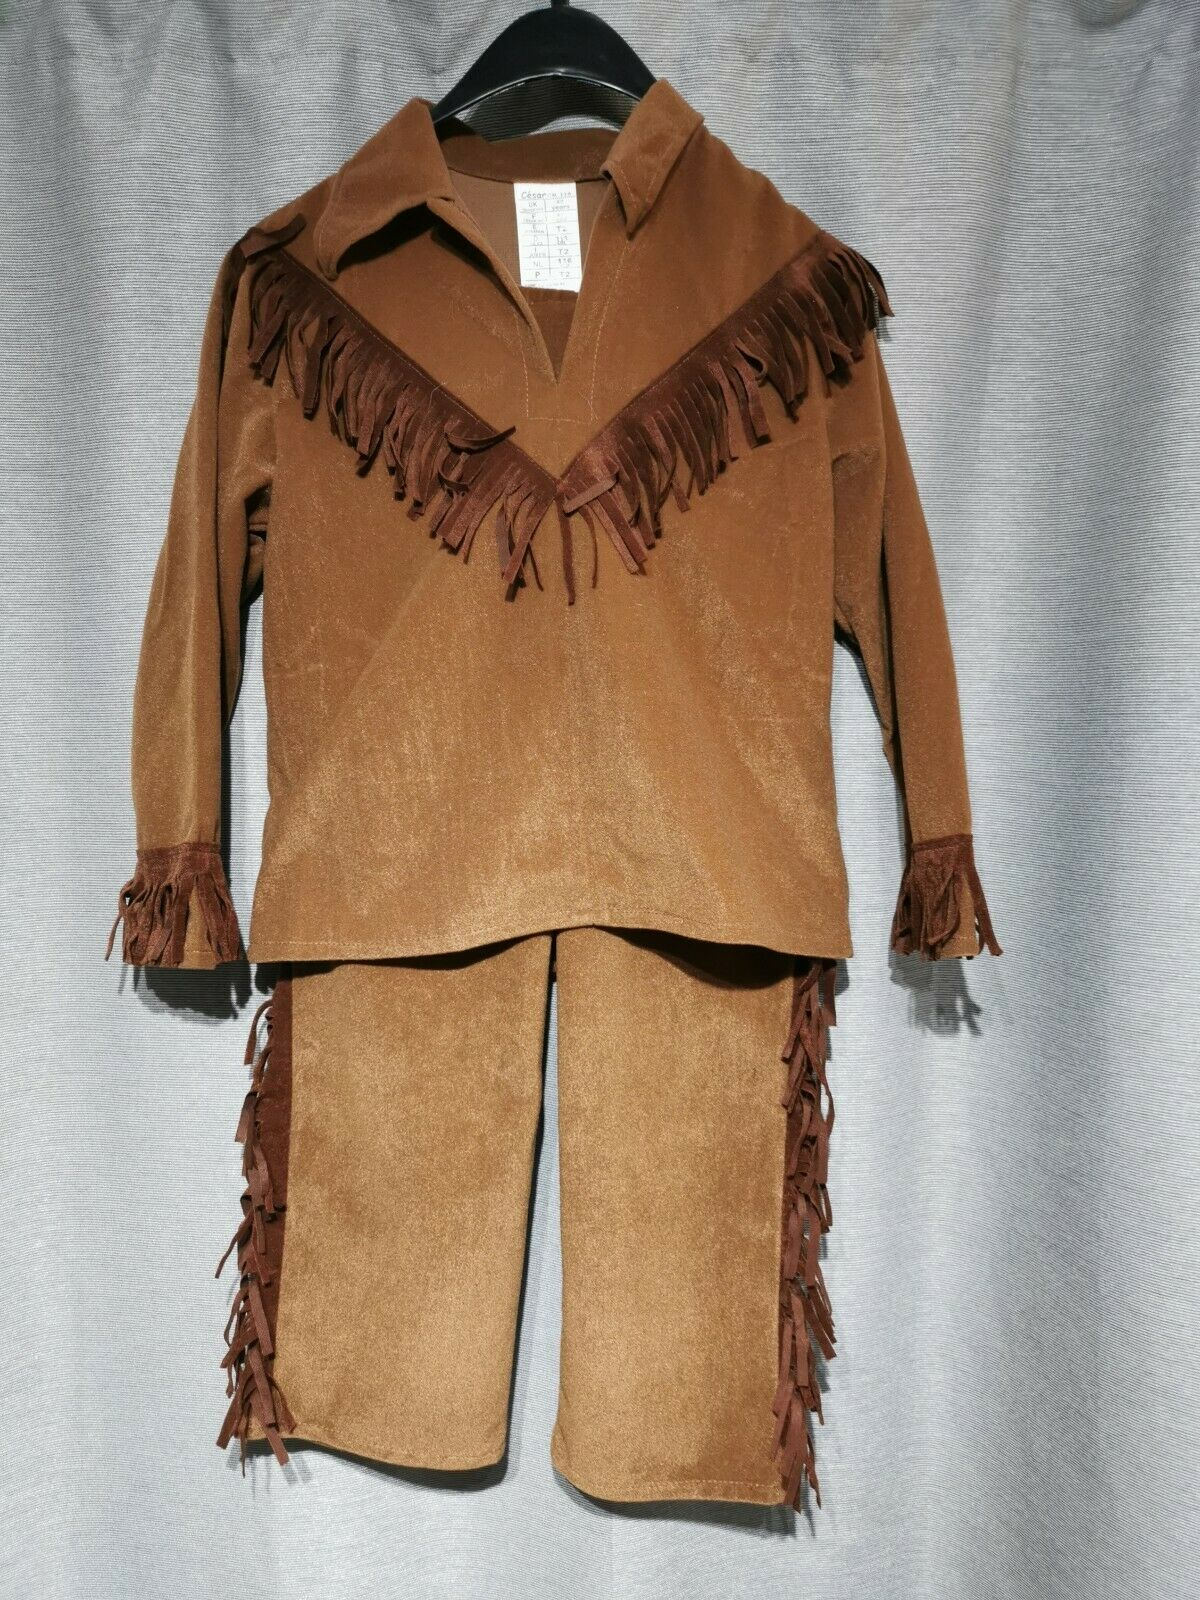 #6 new child's apache indian costume fancy dress cosplay 5-7 years cesar